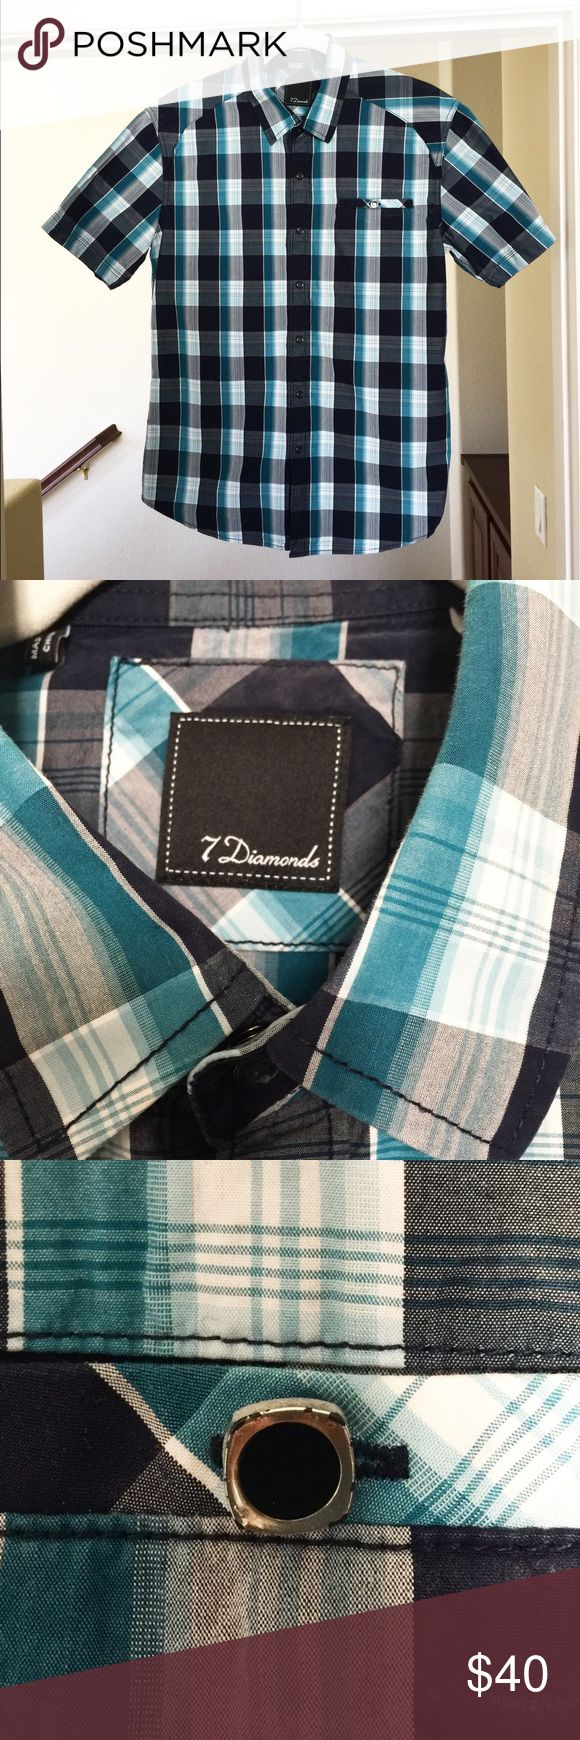 7DIAMONDS Button Down Shirt A sharp looking button down, great for summer. Gently worn, the only imperfection is the button on the shirt is a bit distressed, as seen in photo. 7 Diamonds Shirts Casual Button Down Shirts